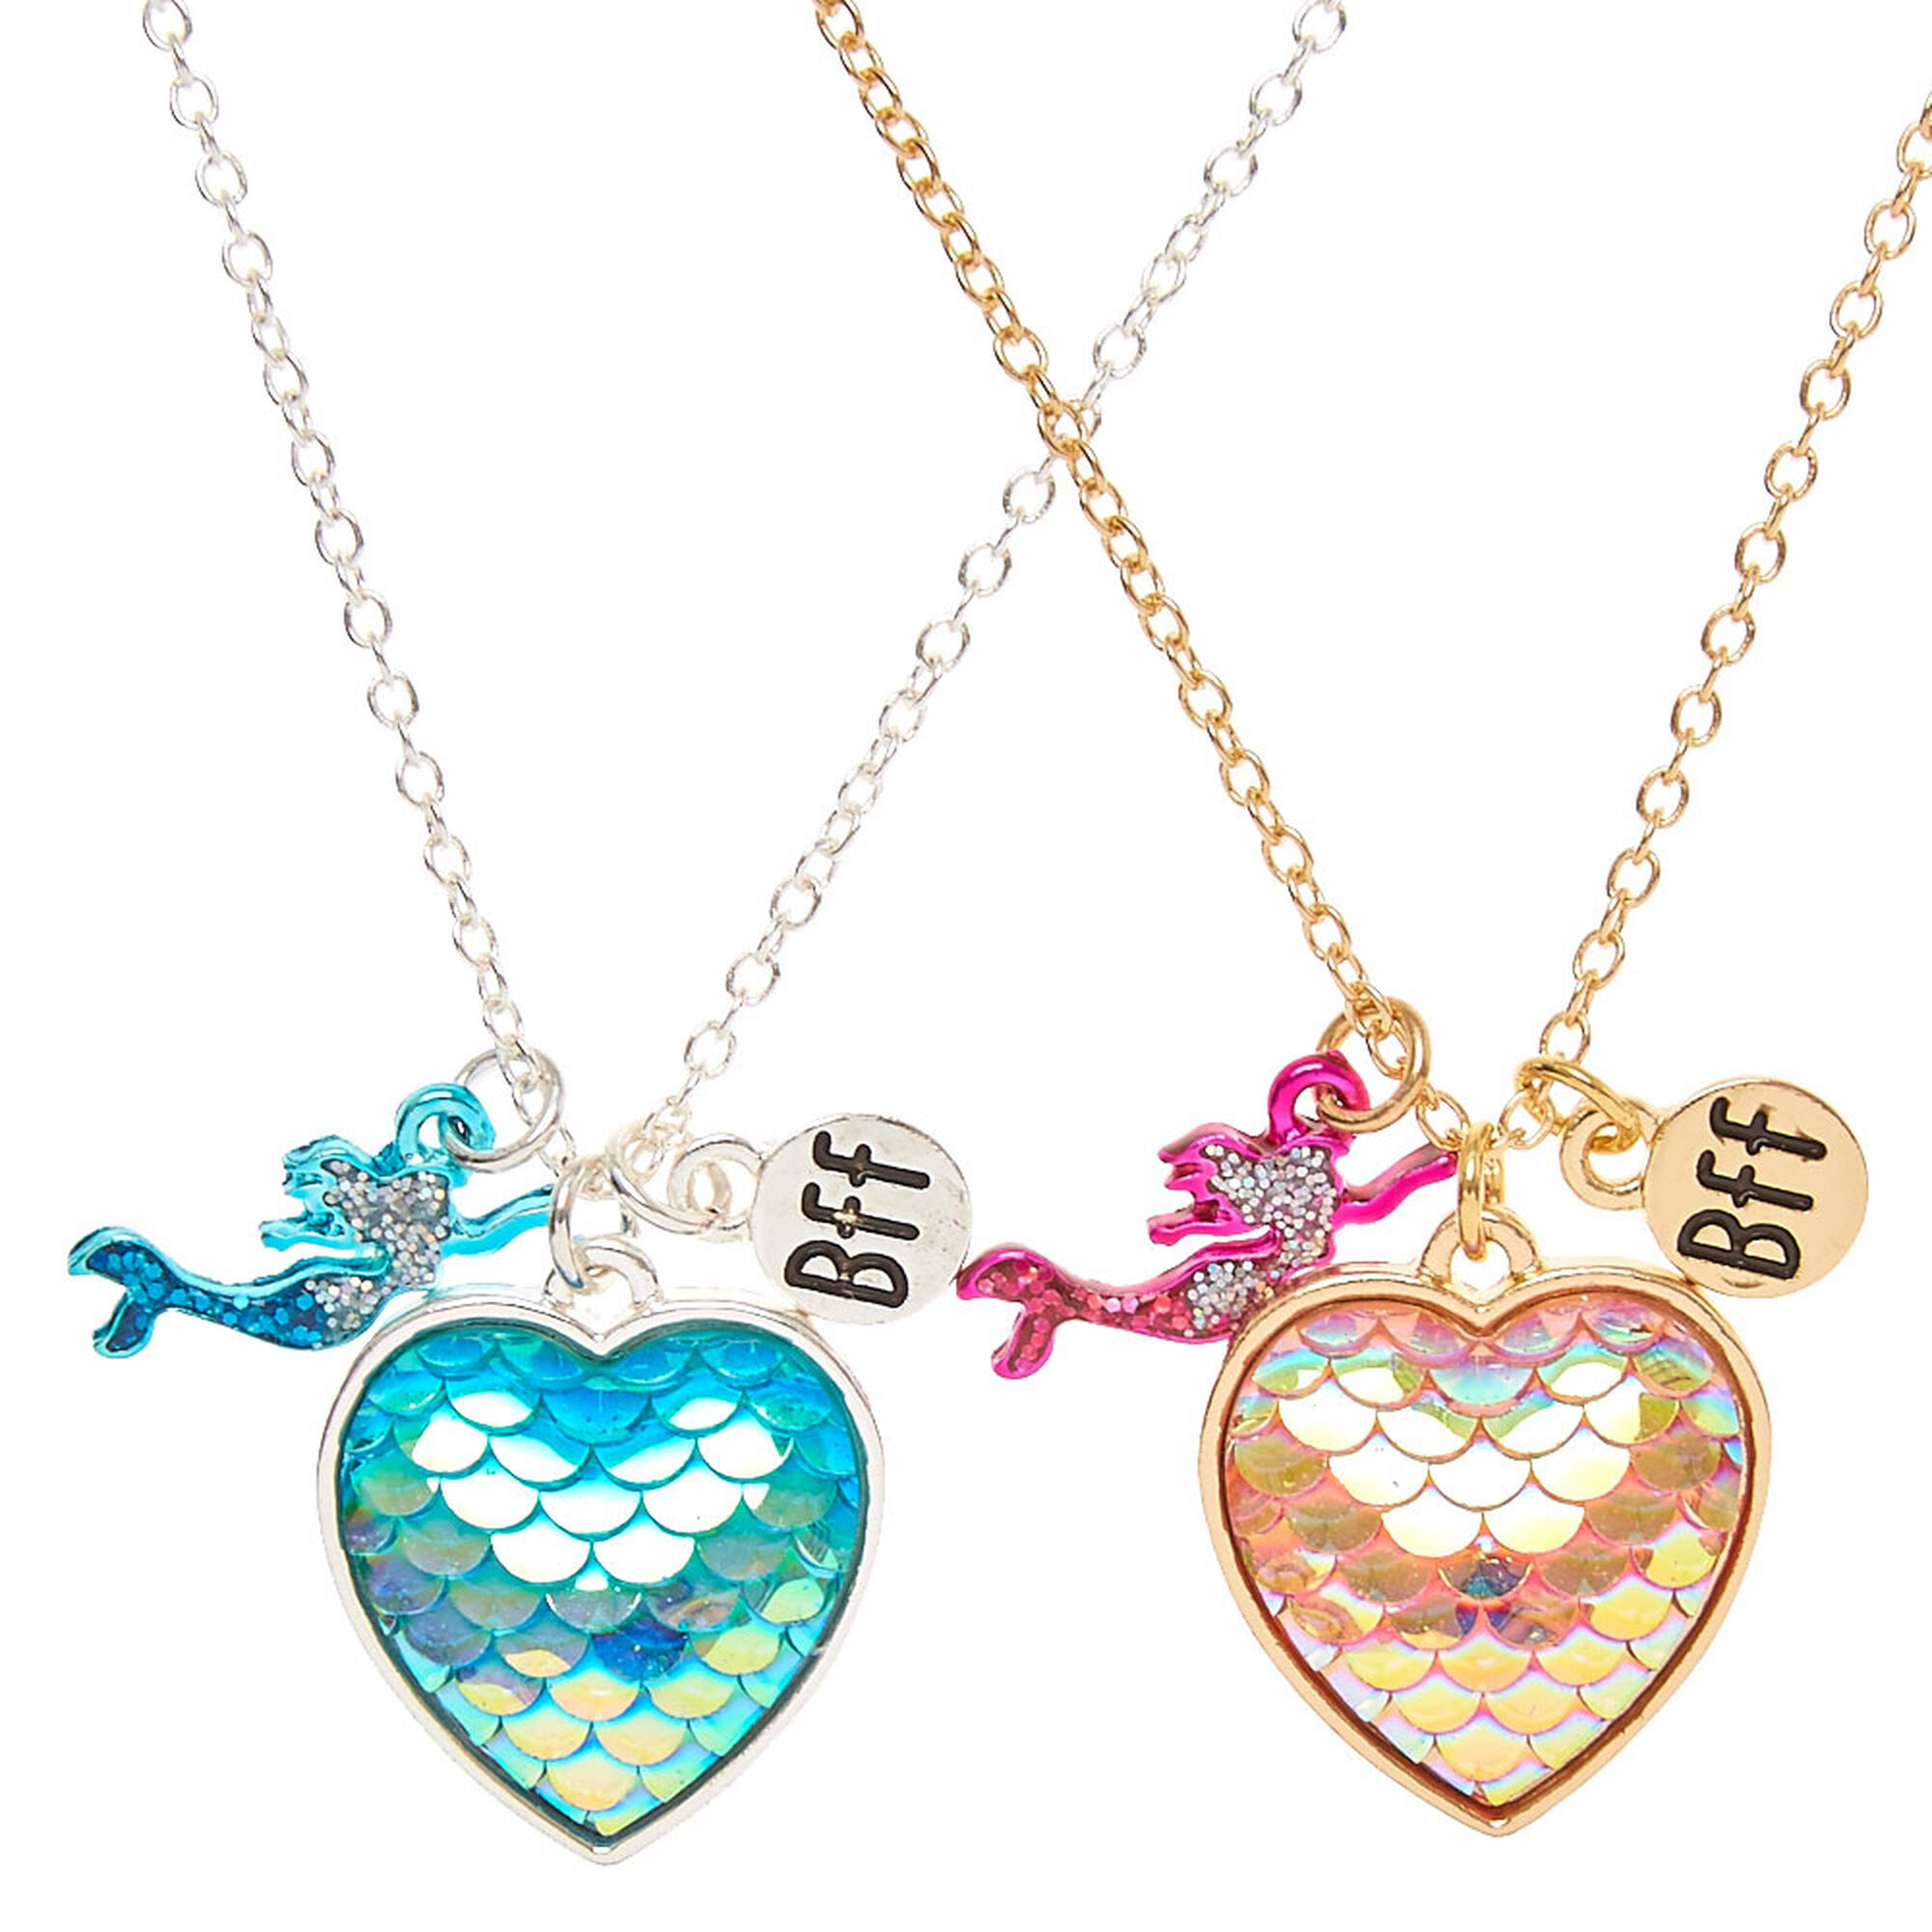 Best Friends Mermaid Scales Heart Pendant Necklaces ...